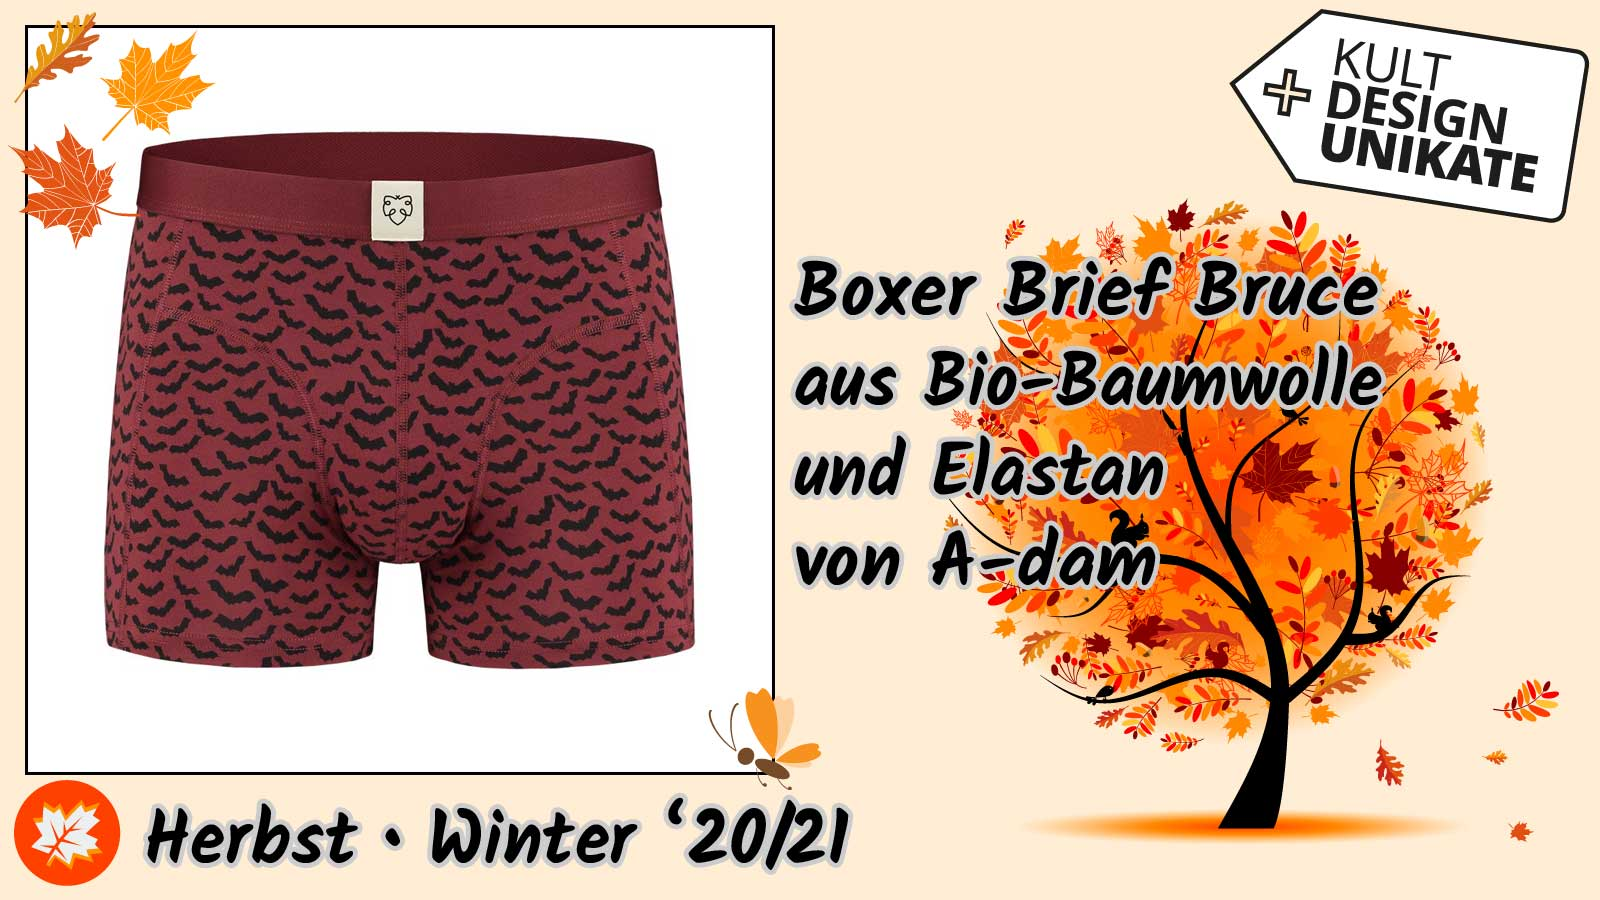 A-dam-Boxer-Brief-Bruce